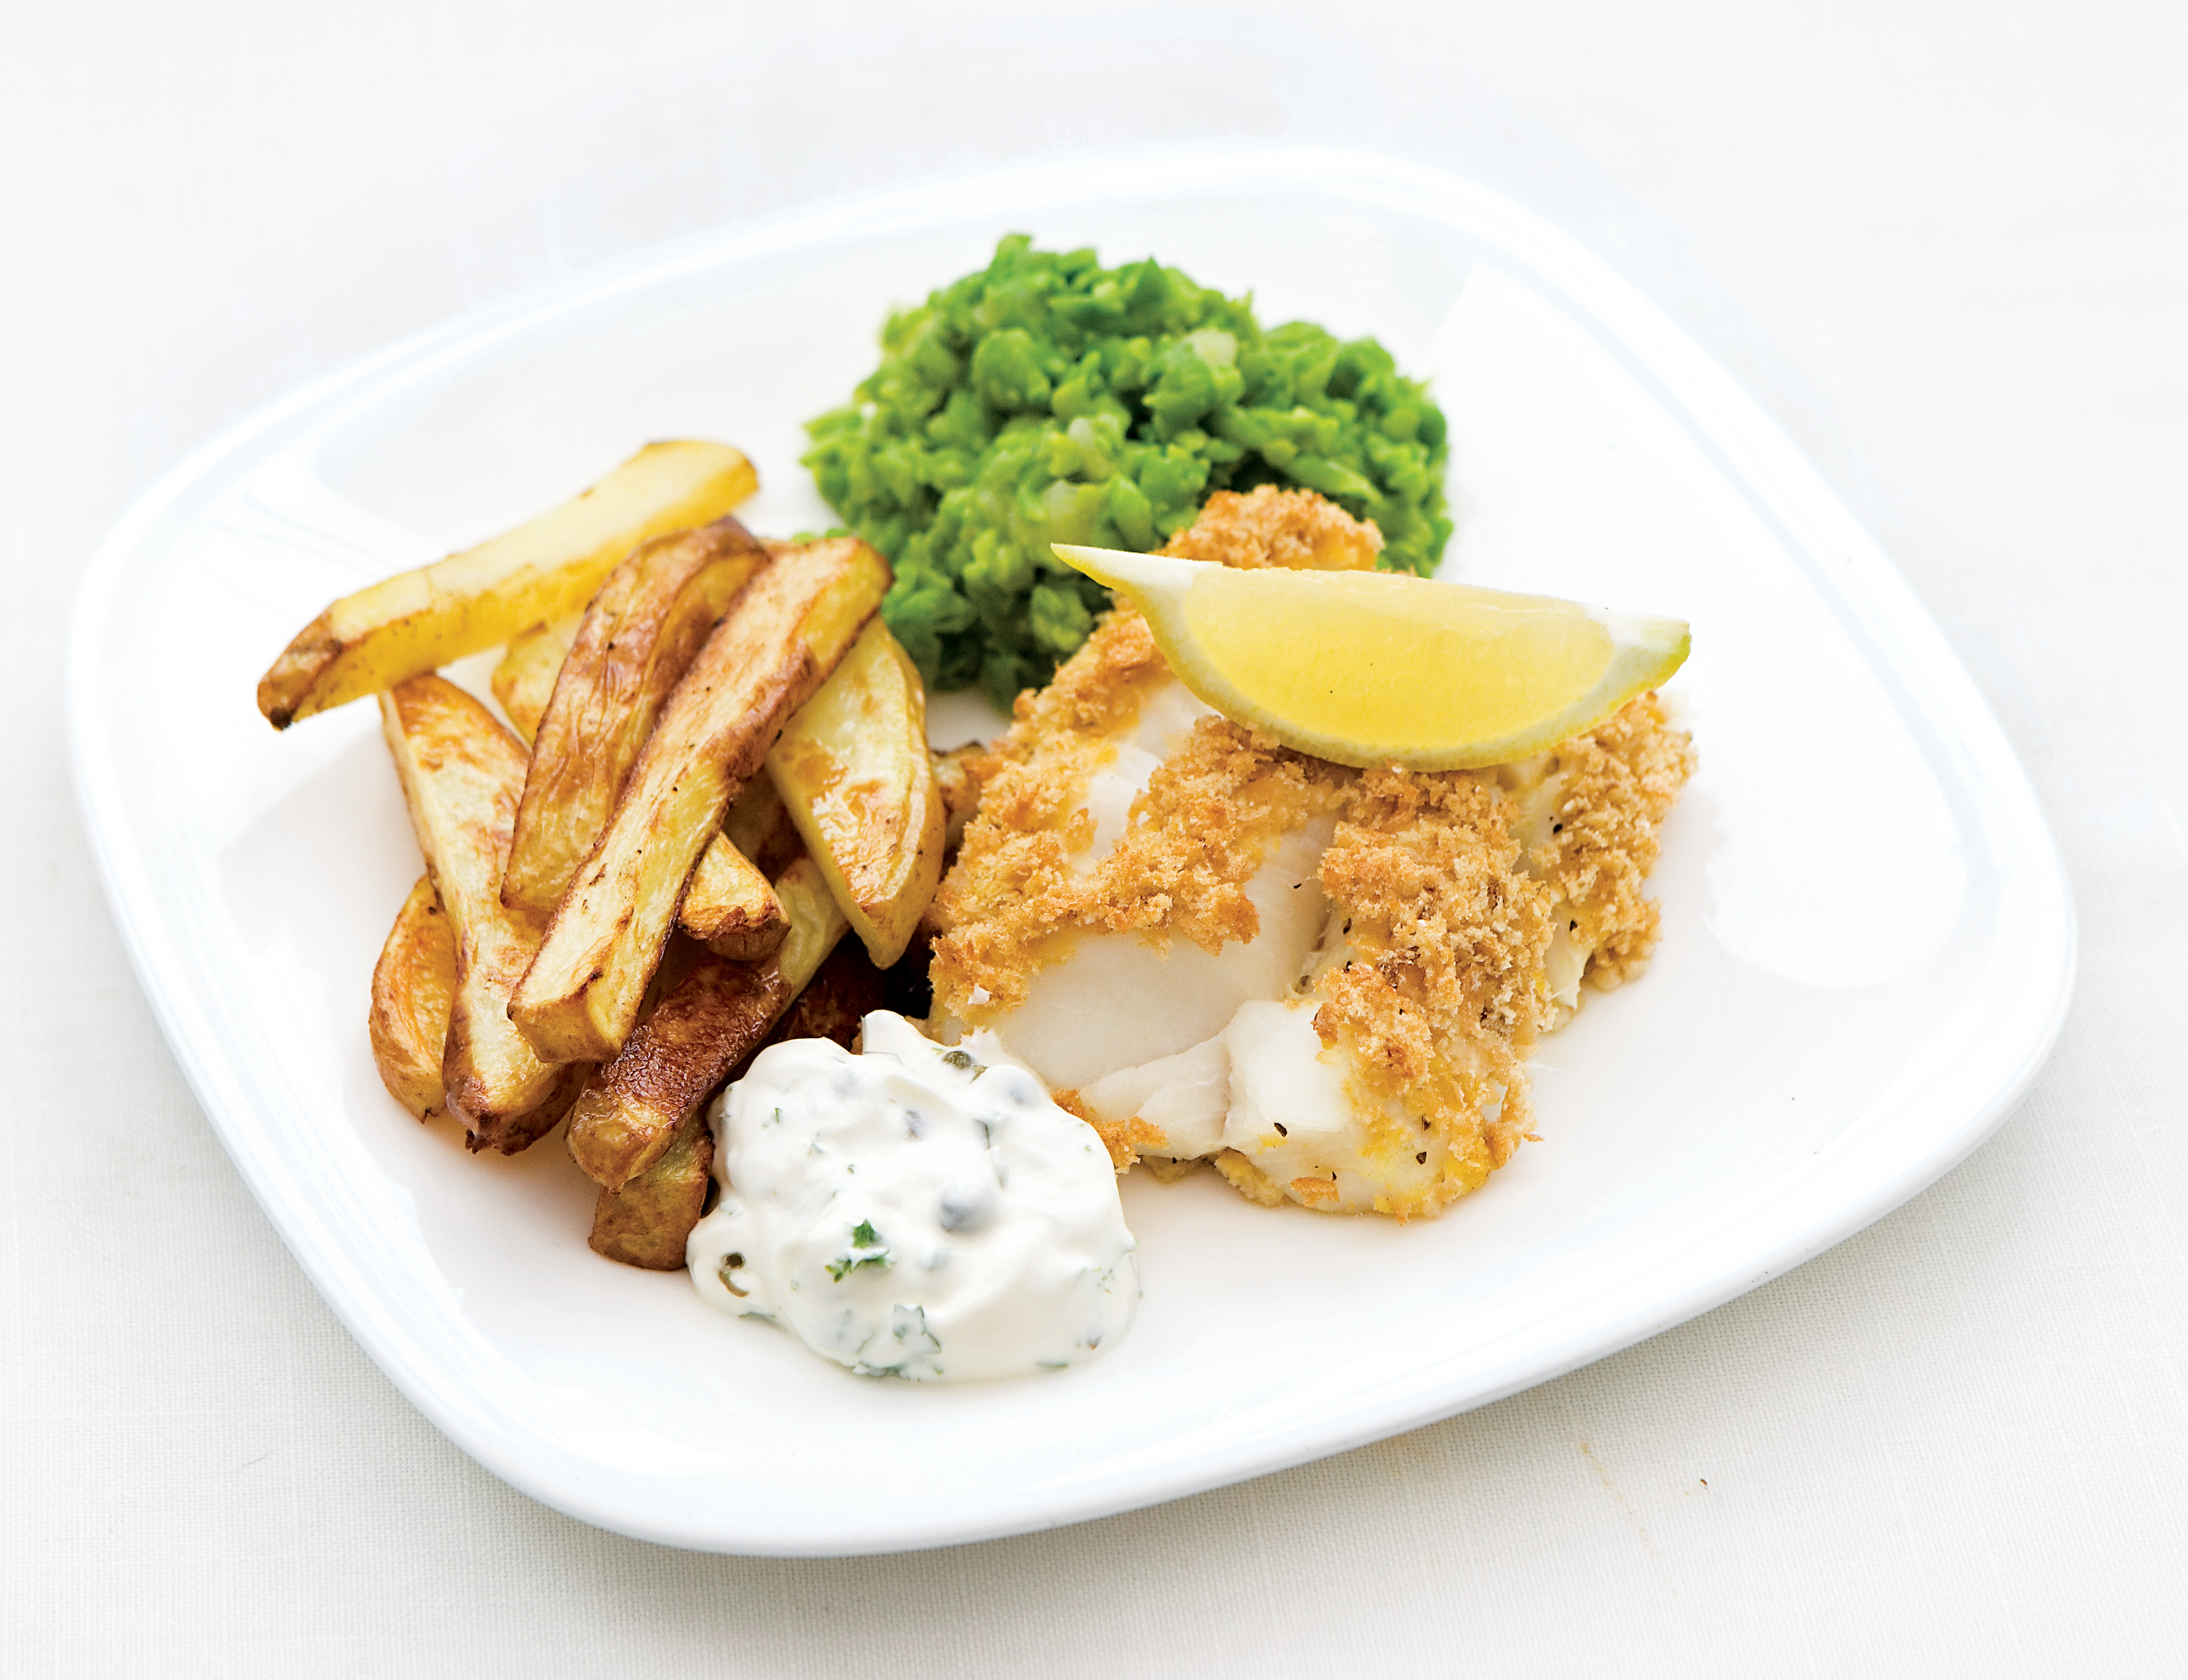 Cod and chips with tartare sauce